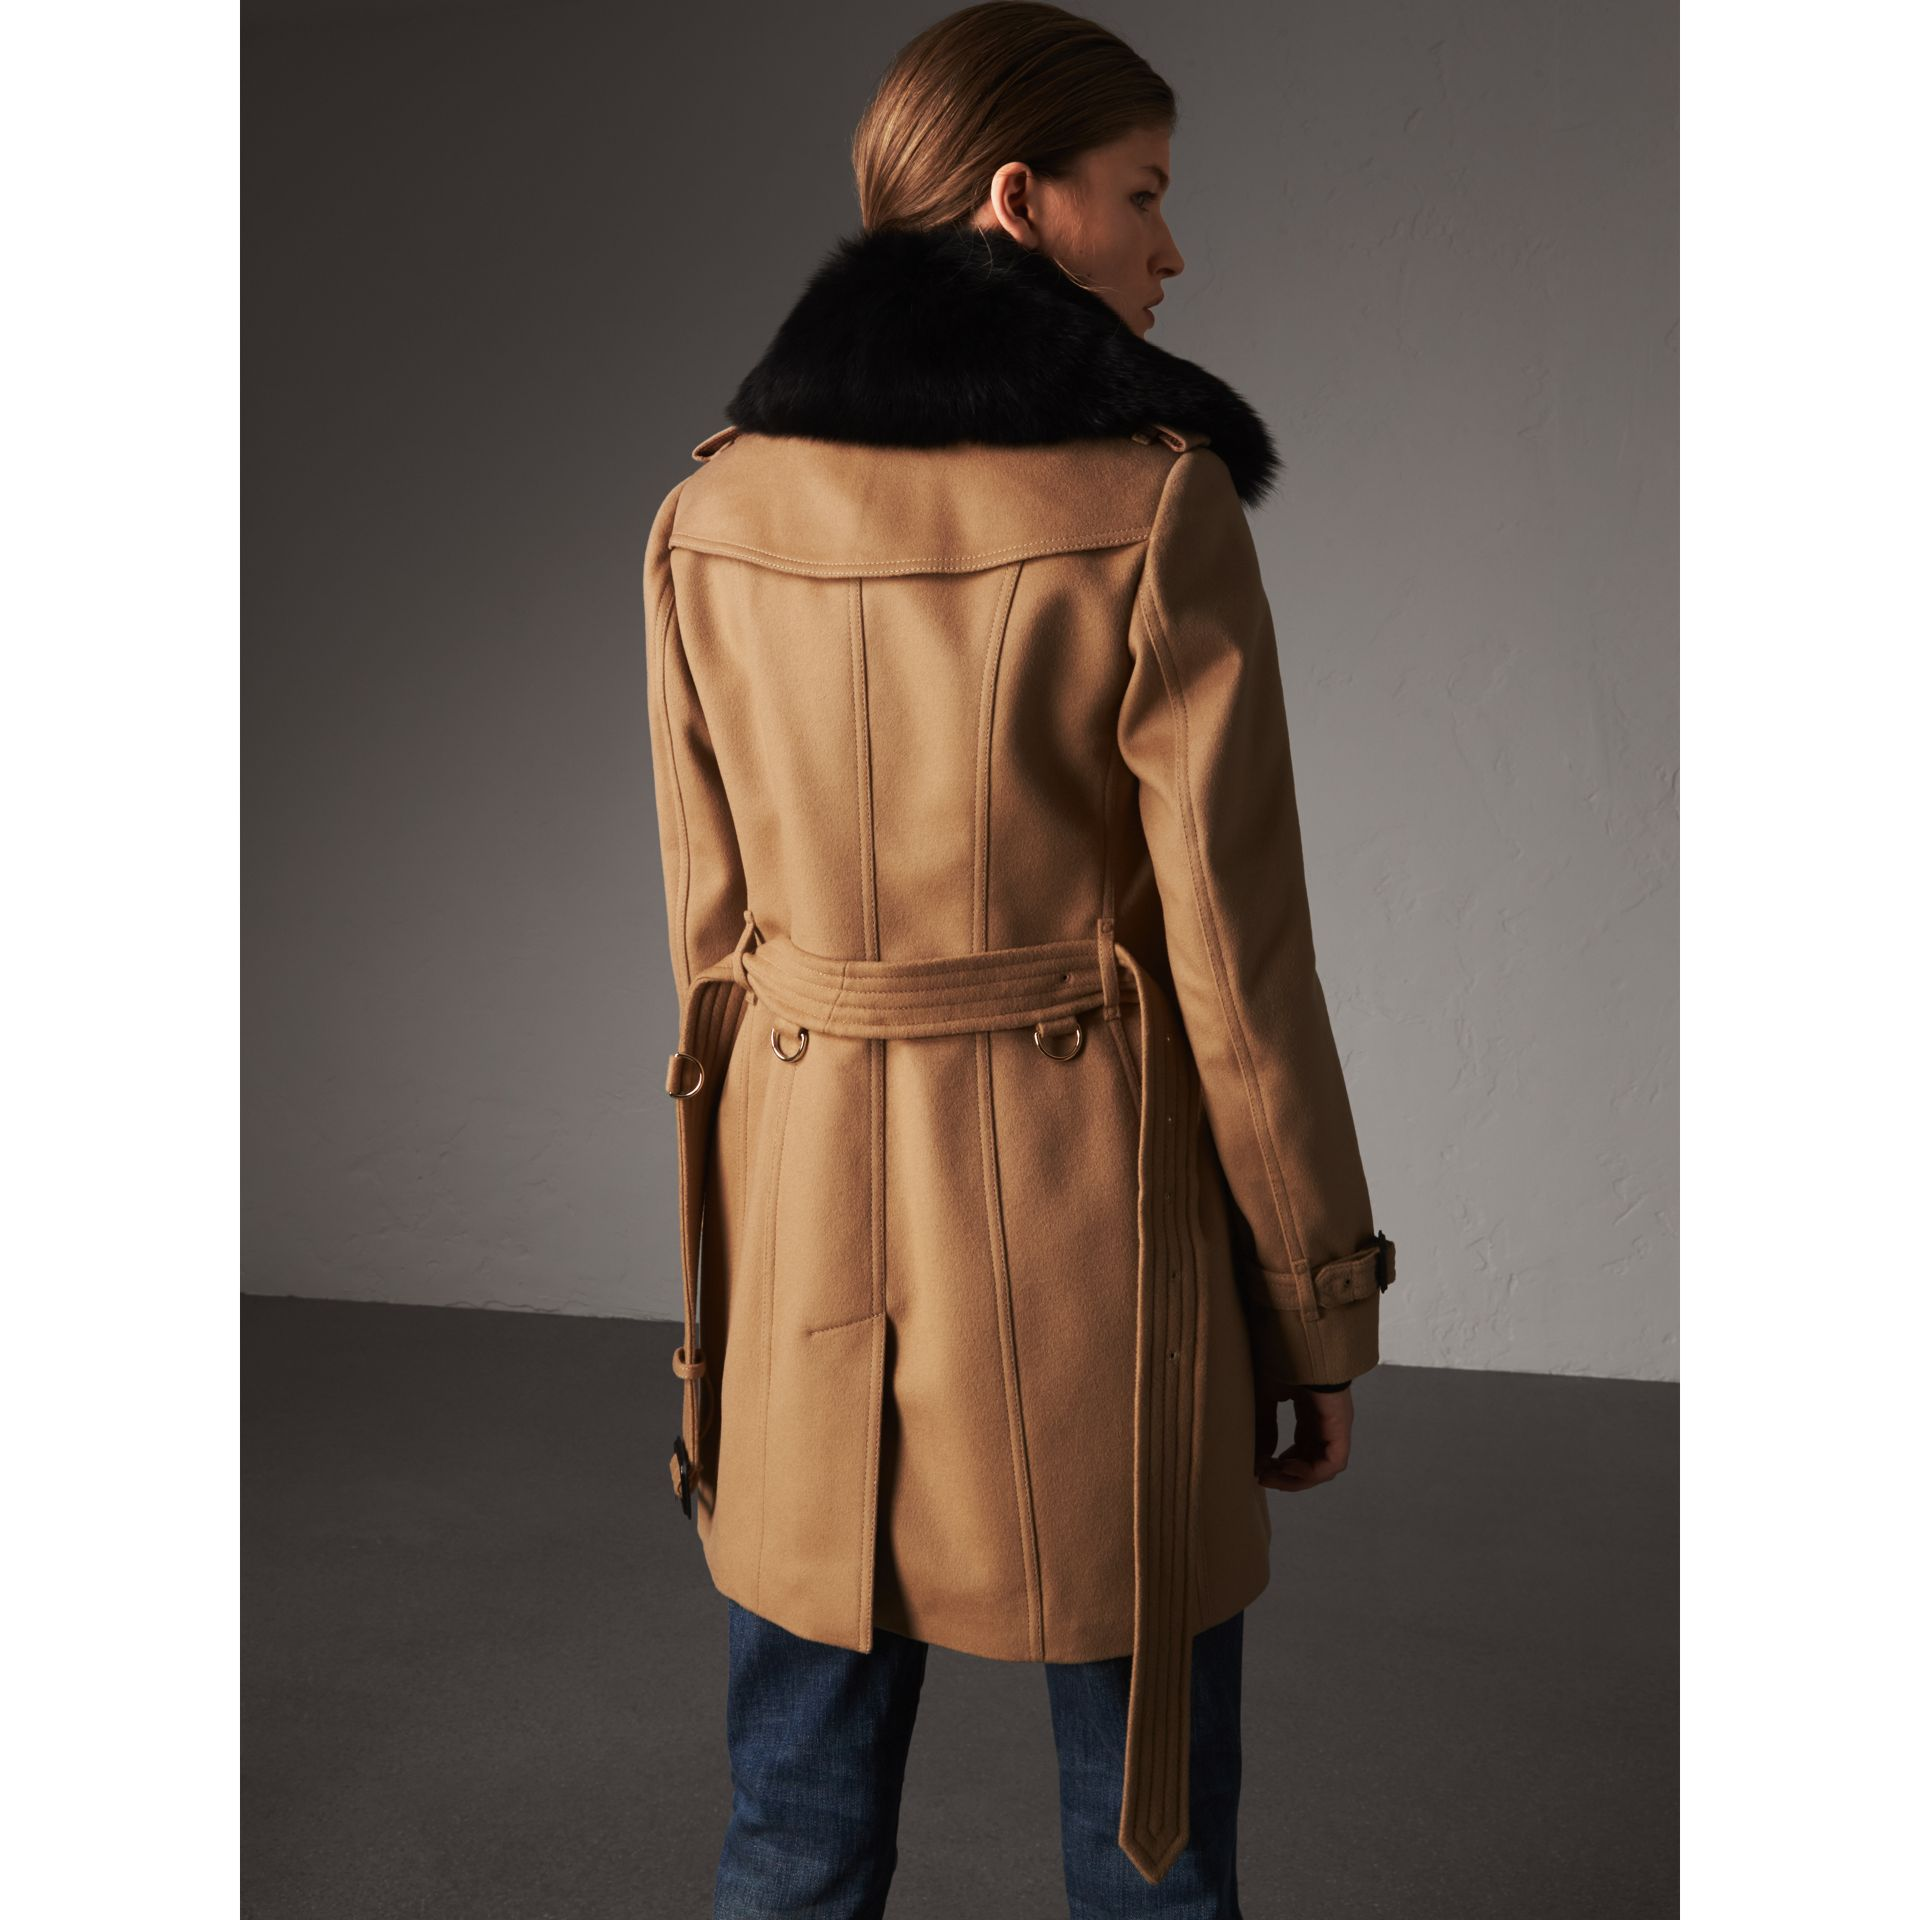 Wool Cashmere Trench Coat with Fur Collar in Camel - Women | Burberry United States - gallery image 2